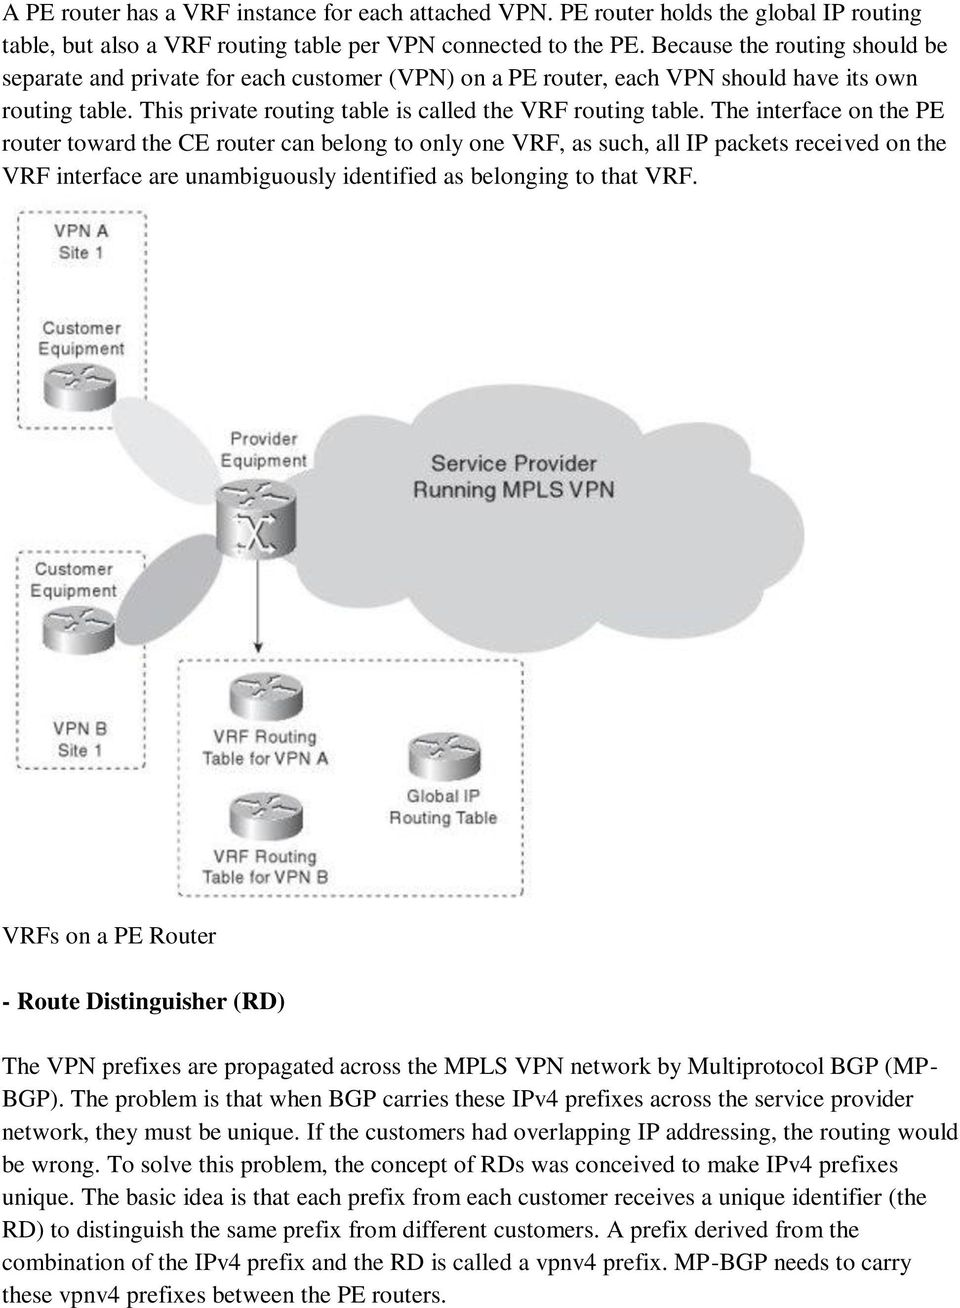 The interface on the PE router toward the CE router can belong to only one VRF, as such, all IP packets received on the VRF interface are unambiguously identified as belonging to that VRF.